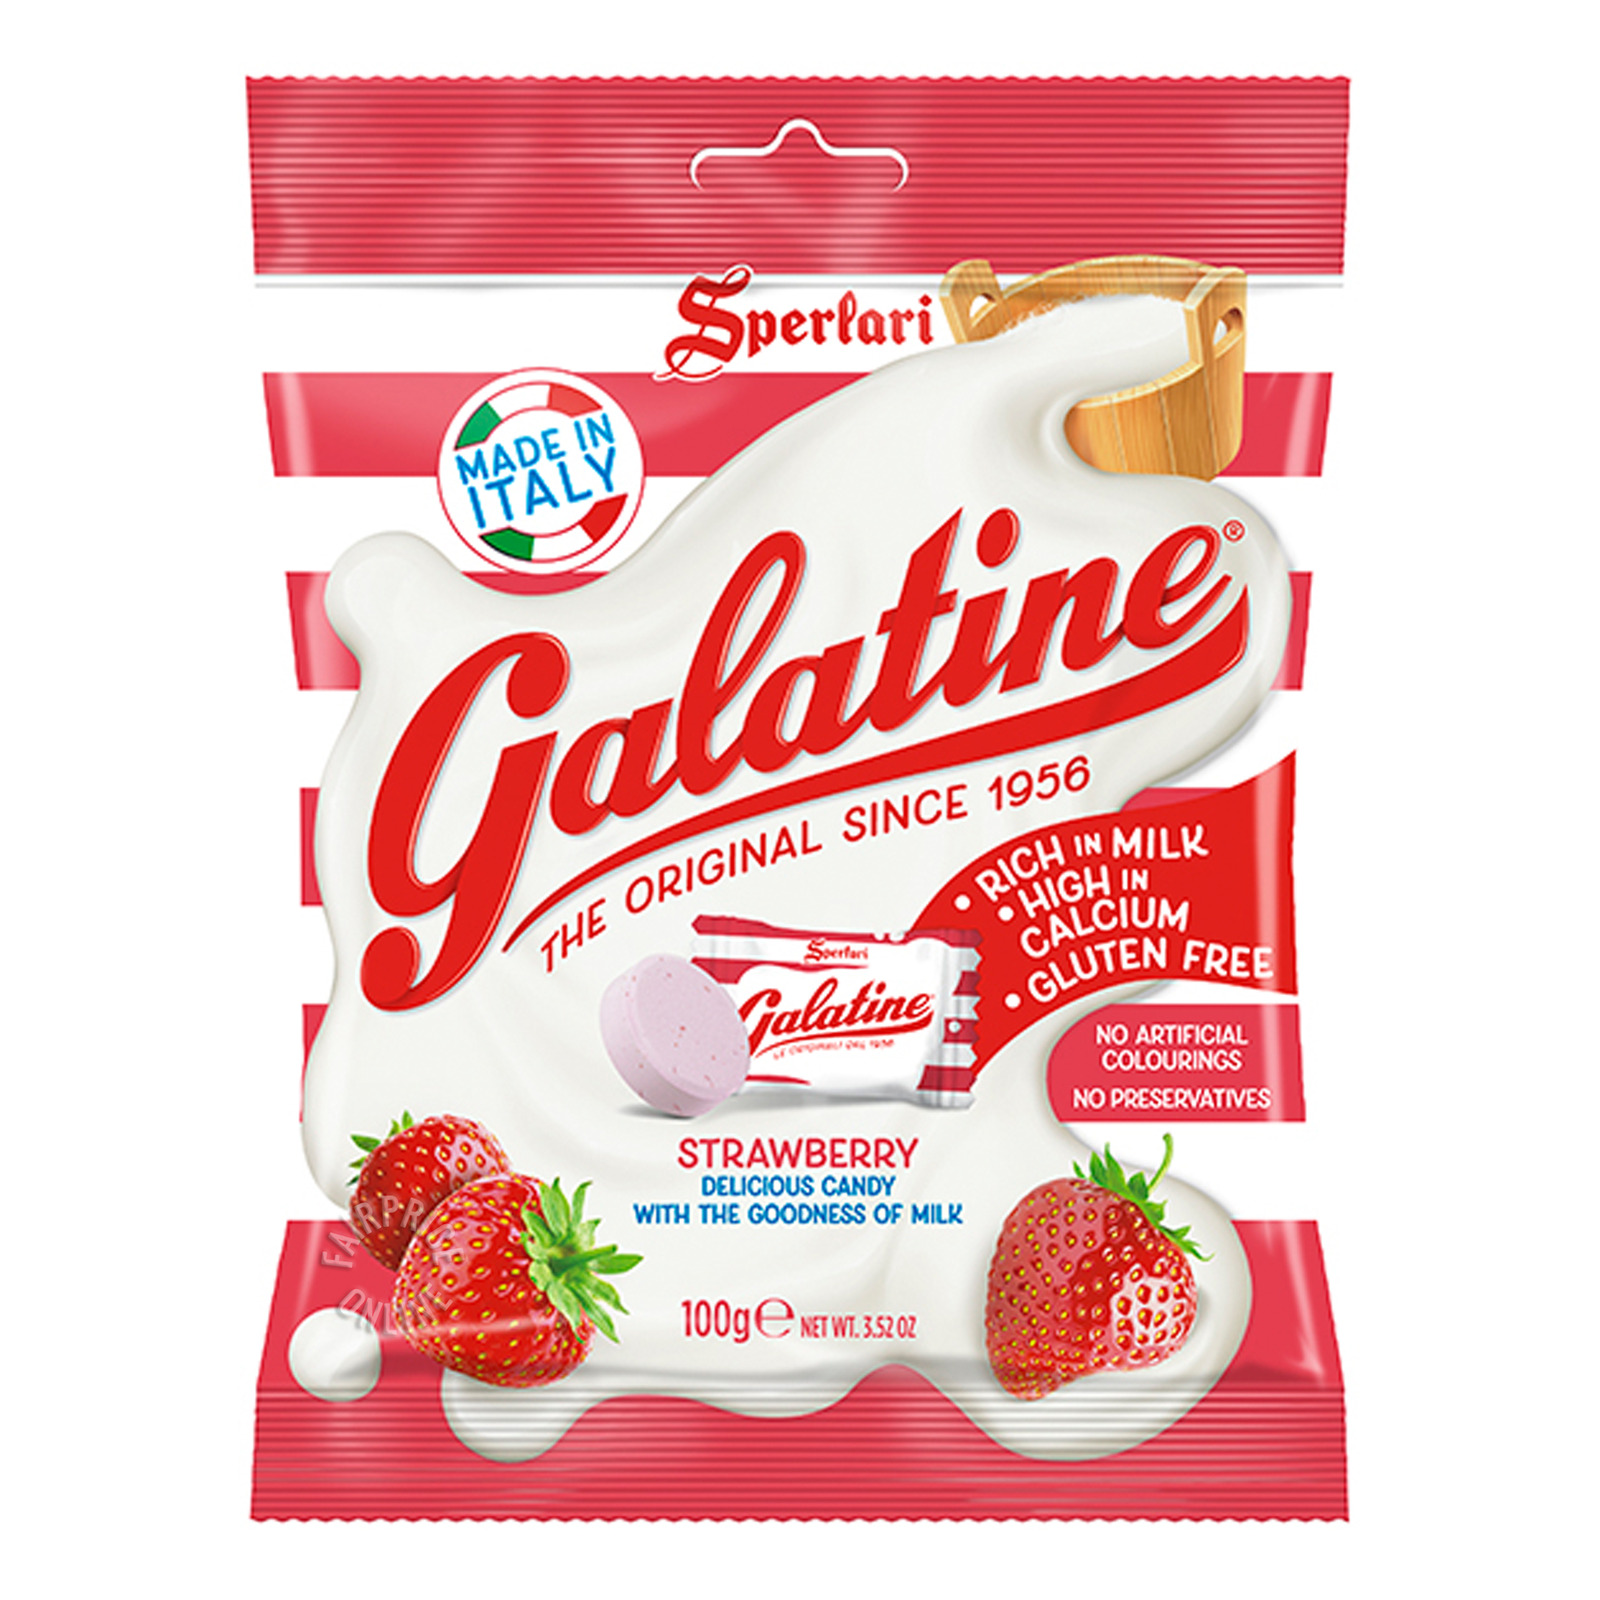 Galatine Milk Candy - Strawberry